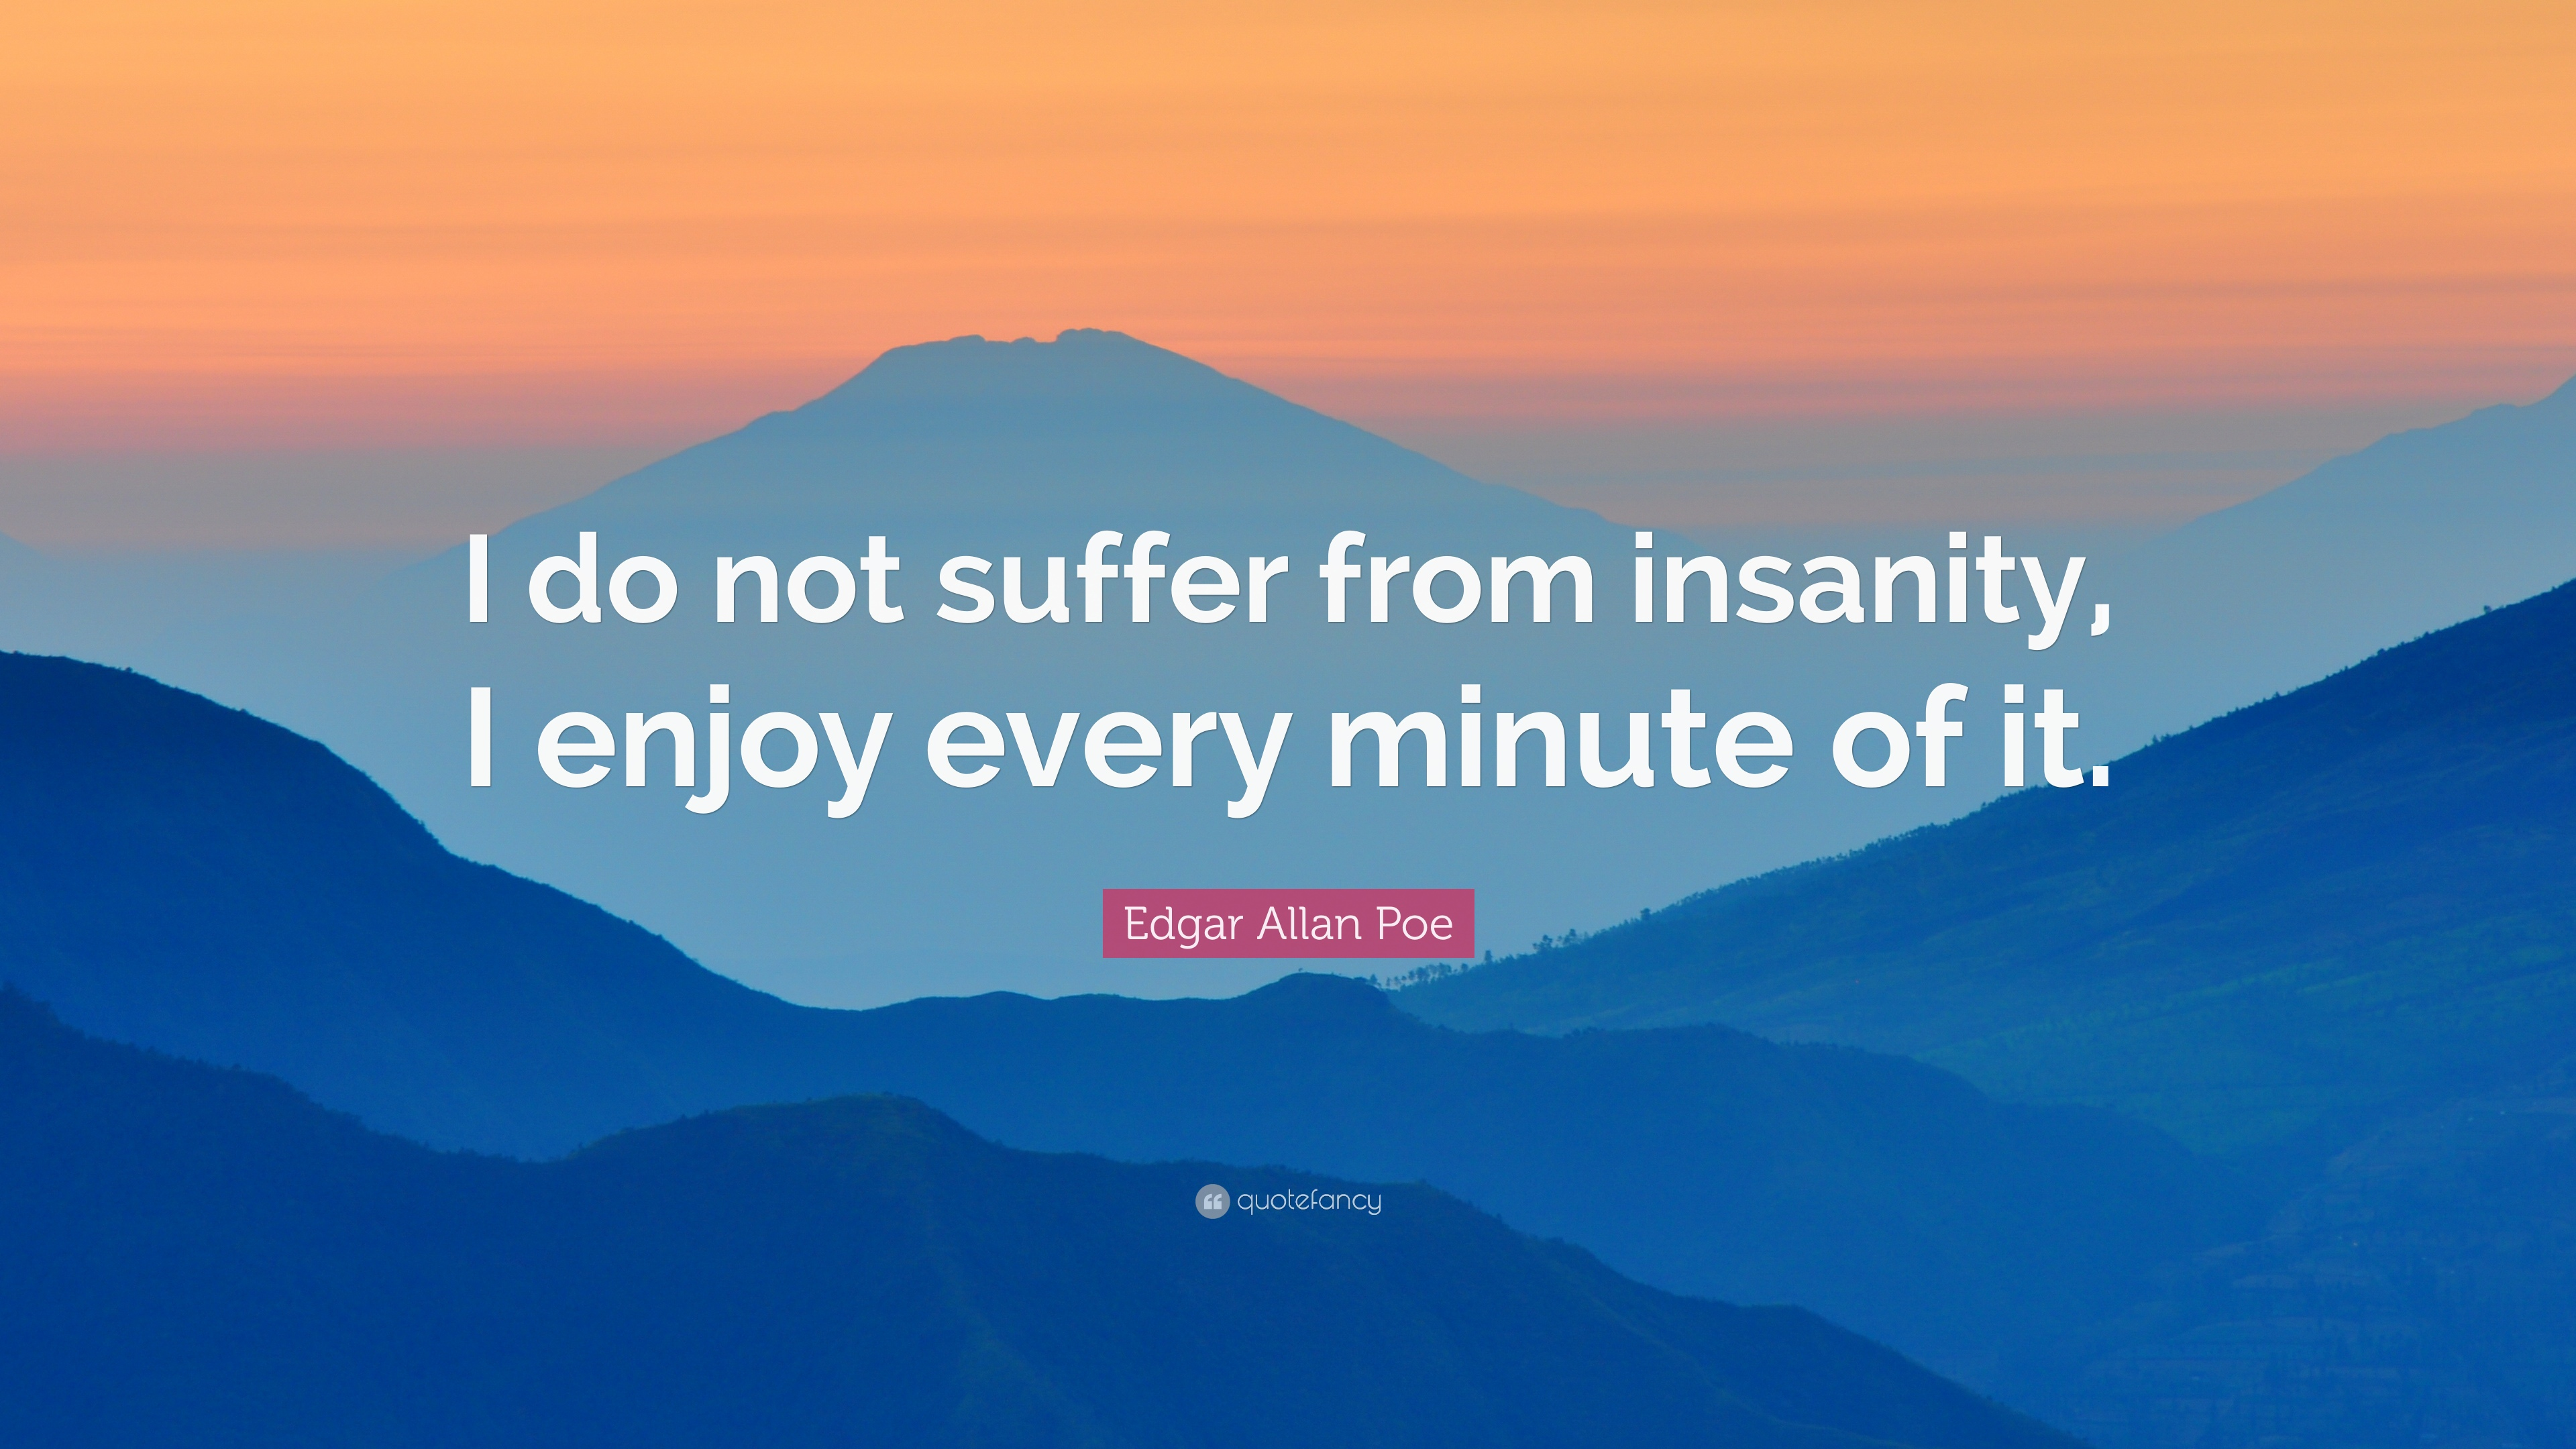 edgar allan poe quote i do not suffer from insanity i enjoy edgar allan poe quote i do not suffer from insanity i enjoy every